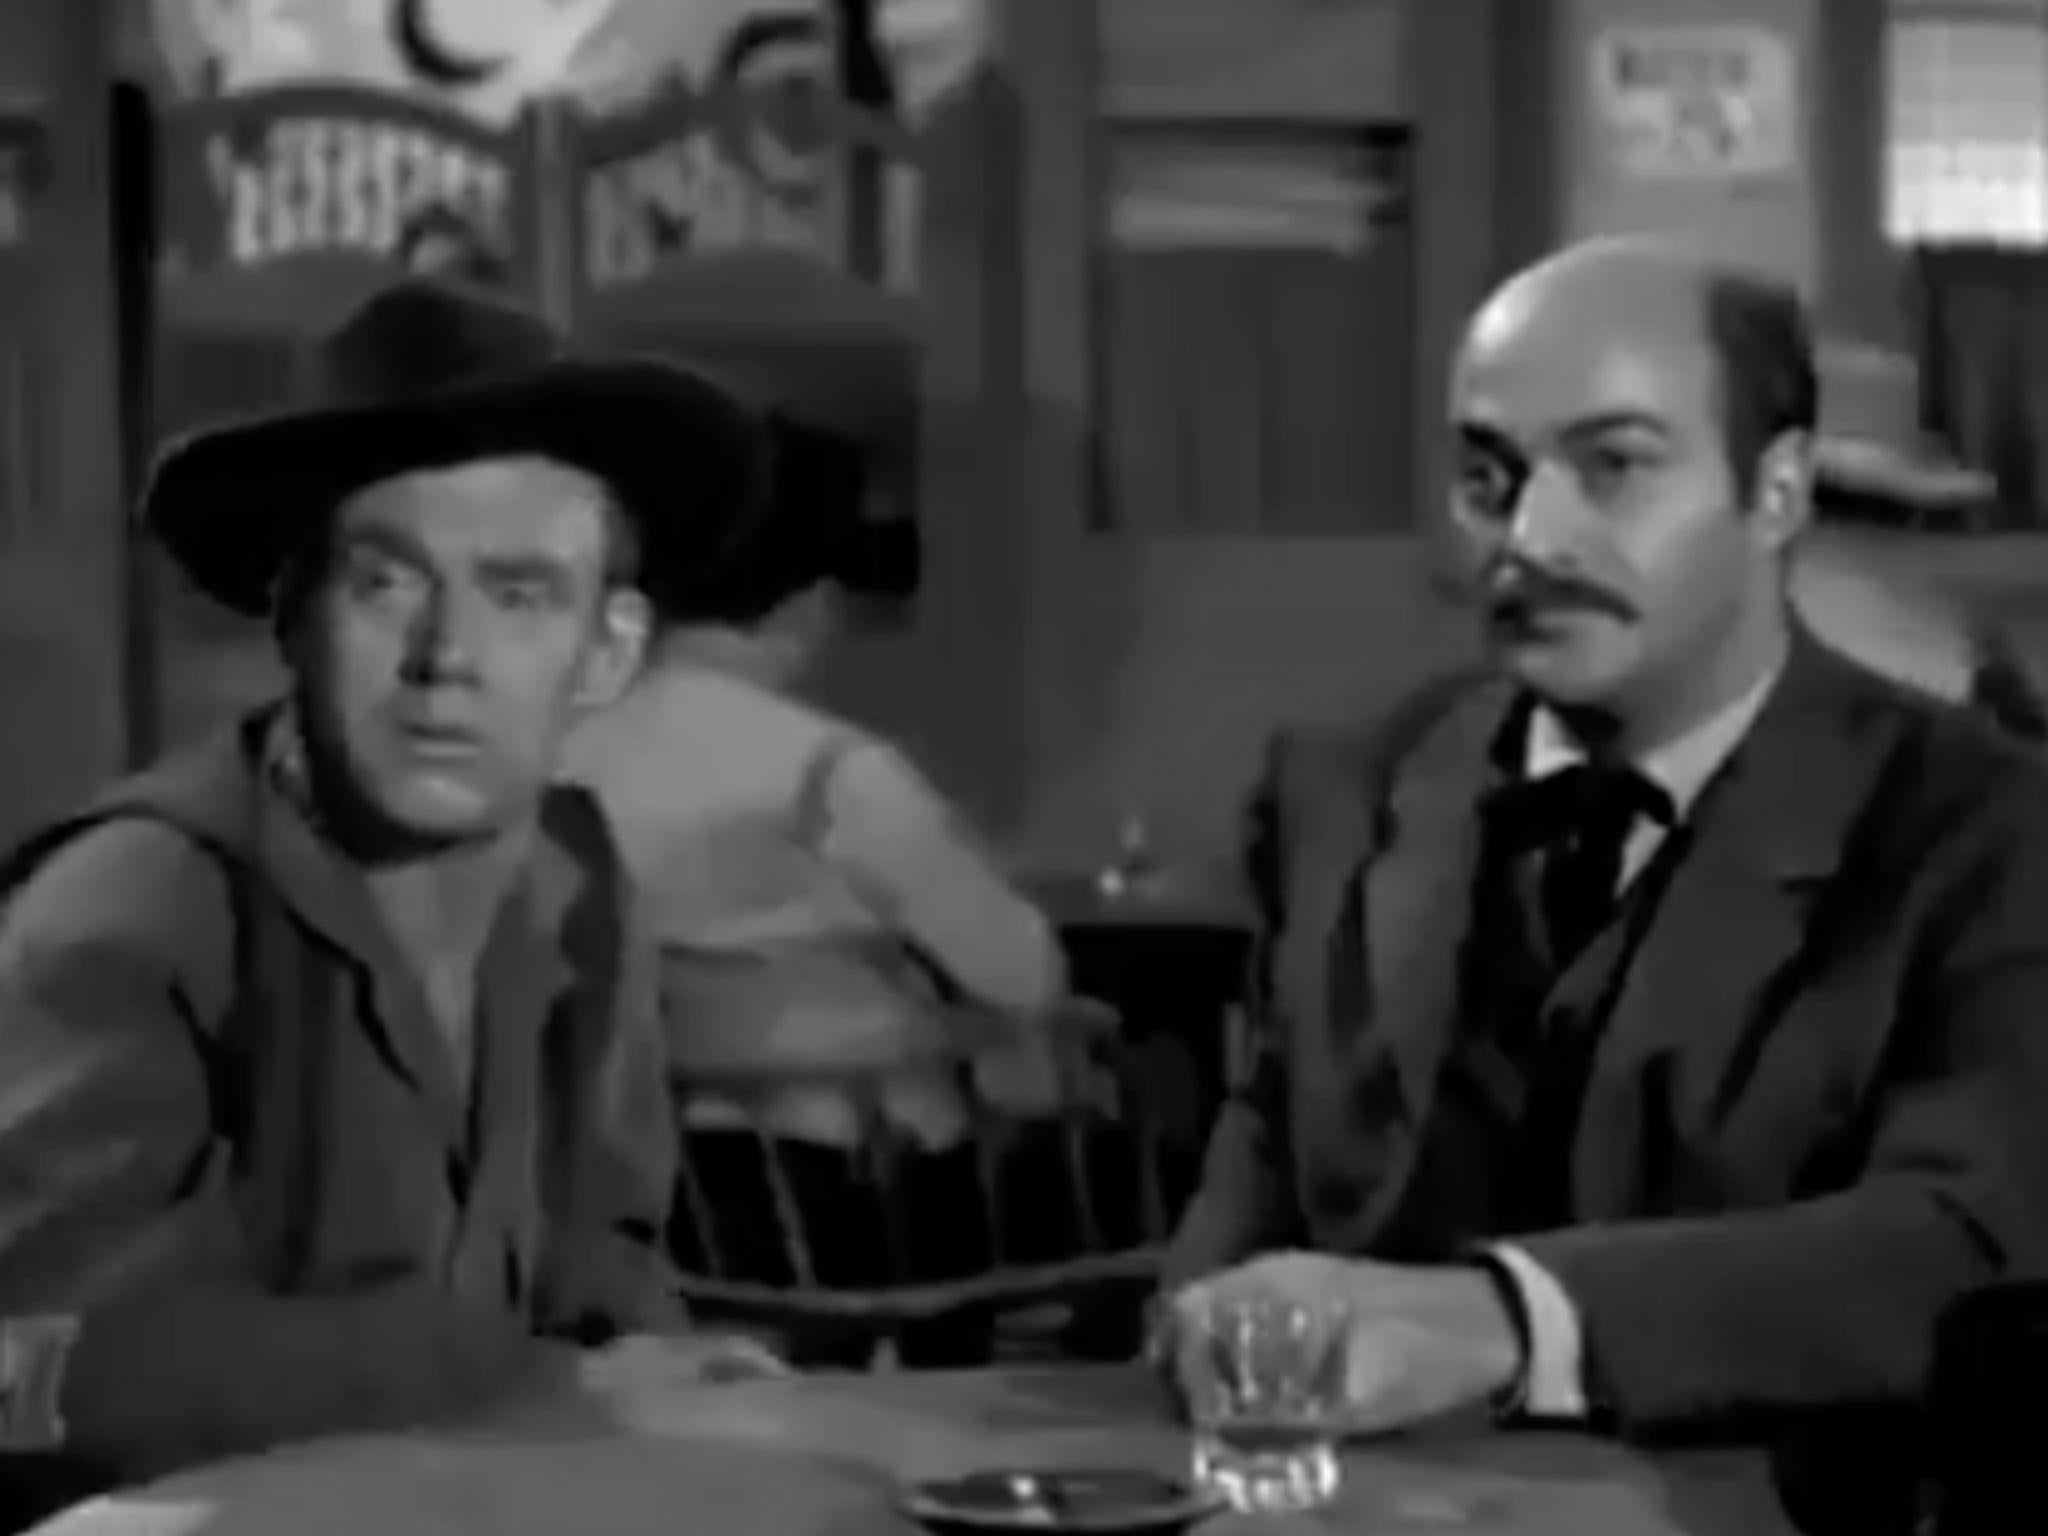 TV show from the 50s features man called Trump who wanted to build a wall. It doesn't end well